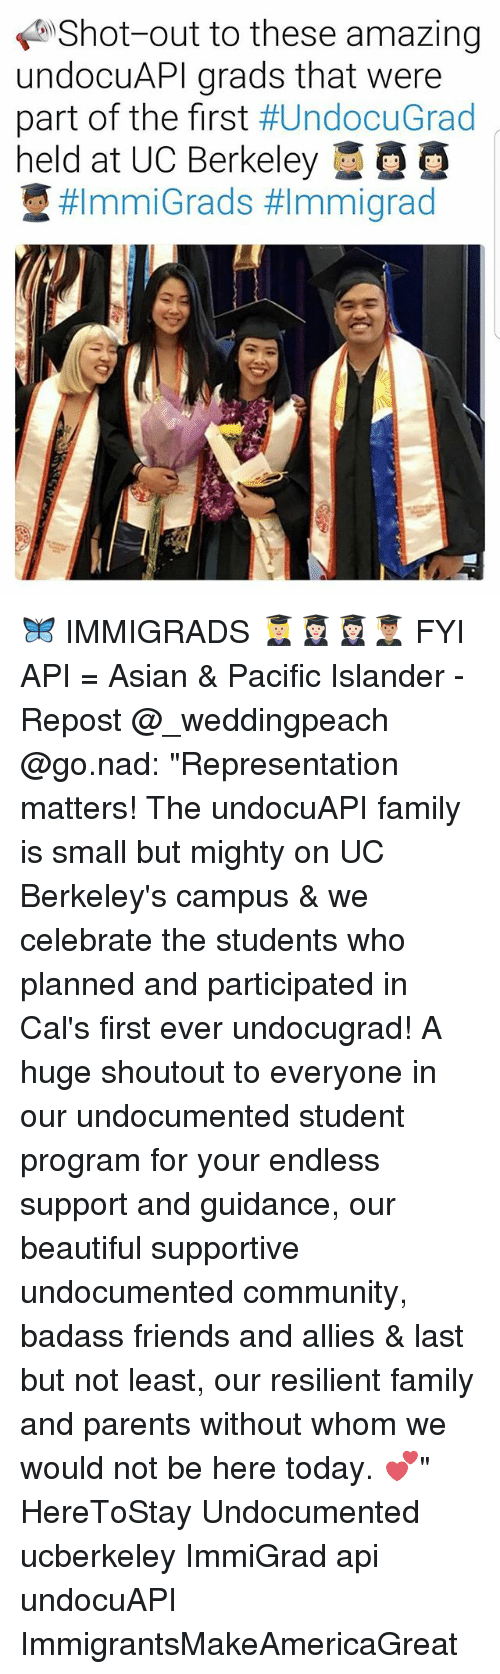 """Asian, Beautiful, and Community: Shot out to these amazing  undocuAPI grads that were  part of the first  HUndocuGrad  held at UC Berkeley  #Immi Grads 🦋 IMMIGRADS 👩🏼🎓👩🏻🎓👩🏻🎓👨🏽🎓 FYI API = Asian & Pacific Islander - Repost @_weddingpeach @go.nad: """"Representation matters! The undocuAPI family is small but mighty on UC Berkeley's campus & we celebrate the students who planned and participated in Cal's first ever undocugrad! A huge shoutout to everyone in our undocumented student program for your endless support and guidance, our beautiful supportive undocumented community, badass friends and allies & last but not least, our resilient family and parents without whom we would not be here today. 💕"""" HereToStay Undocumented ucberkeley ImmiGrad api undocuAPI ImmigrantsMakeAmericaGreat"""